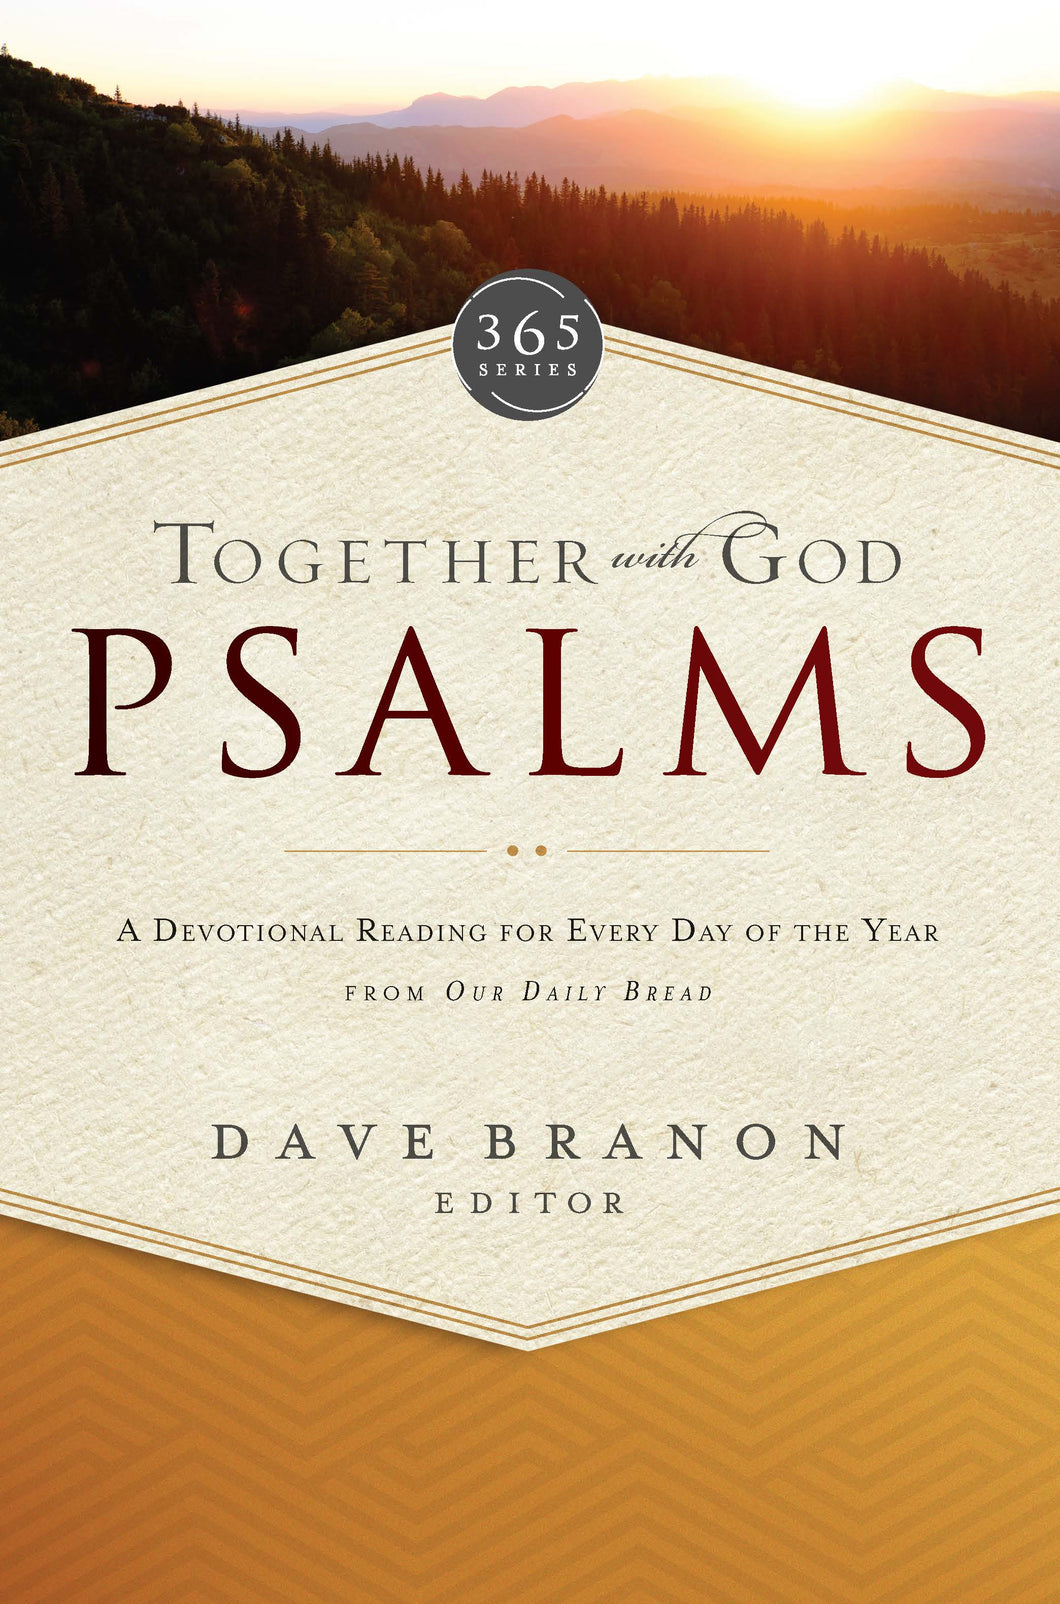 Together with God: Psalms [E-book]